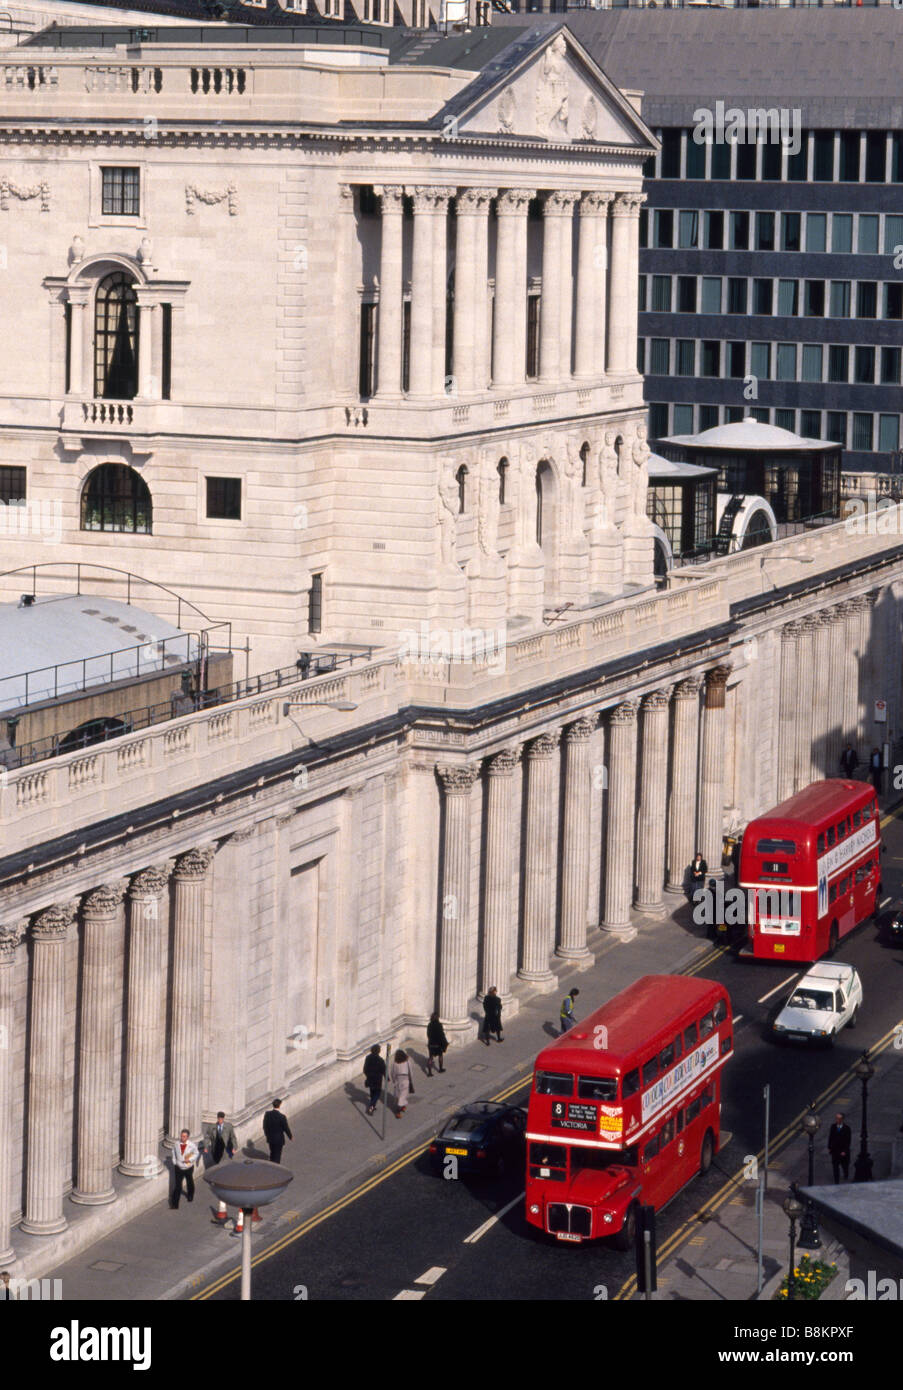 Bank of England The front exterior of the Bank of England London - Stock Image